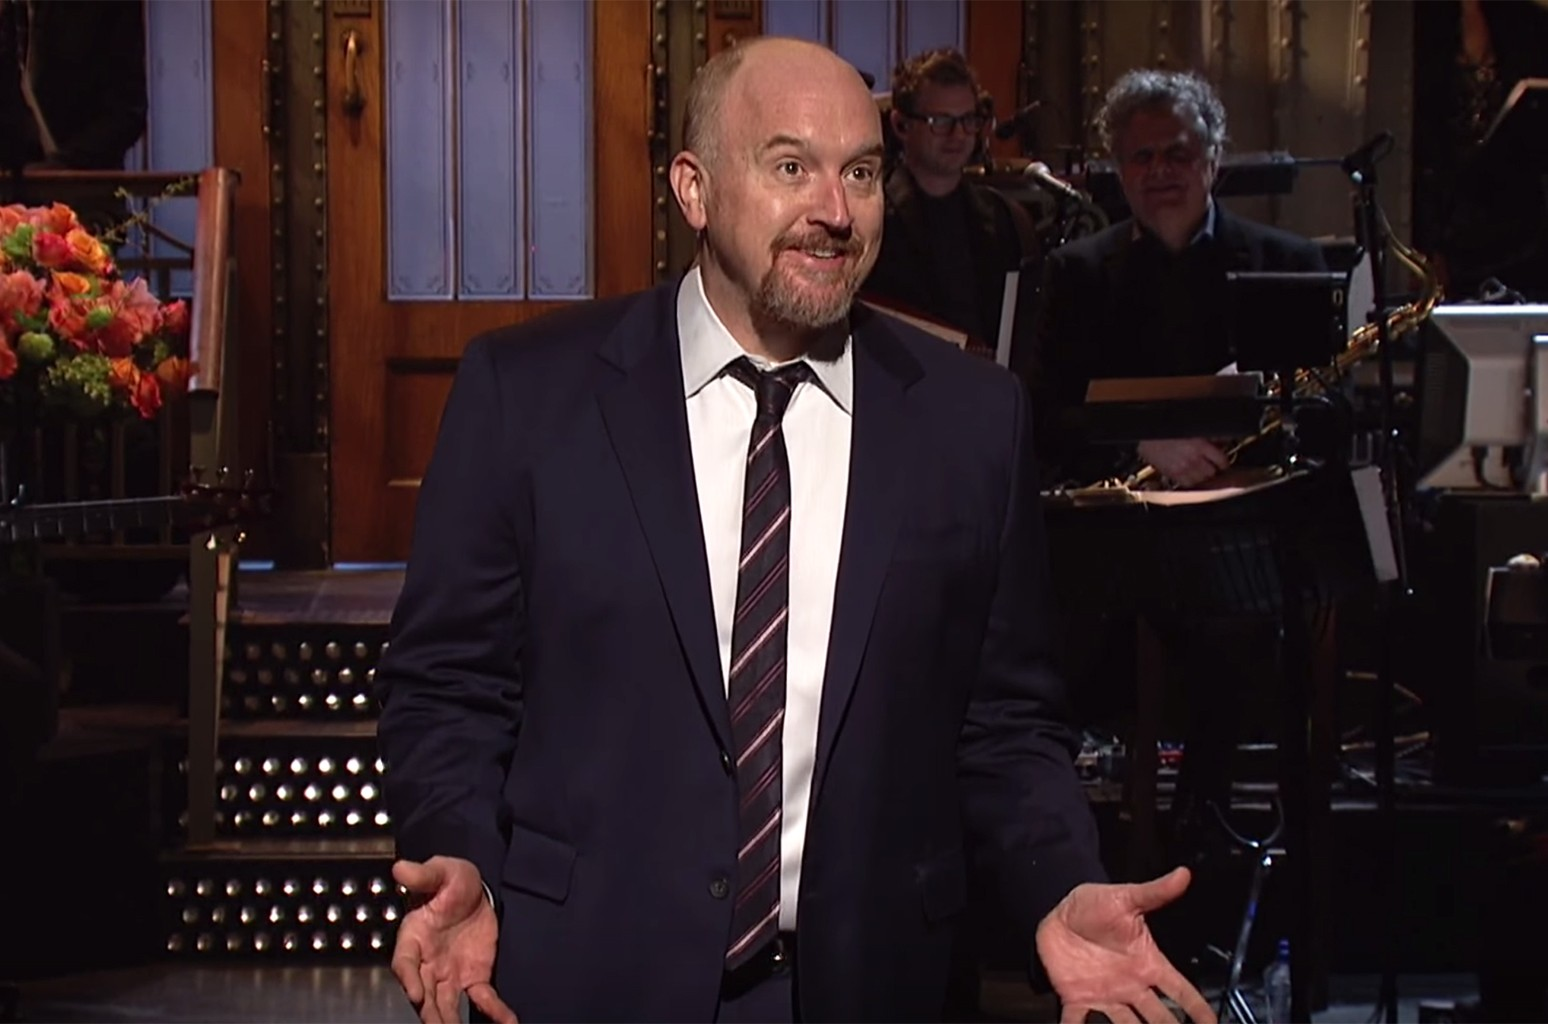 Louis CK during the opening monologue on Saturday Night Live on April 8, 2017.